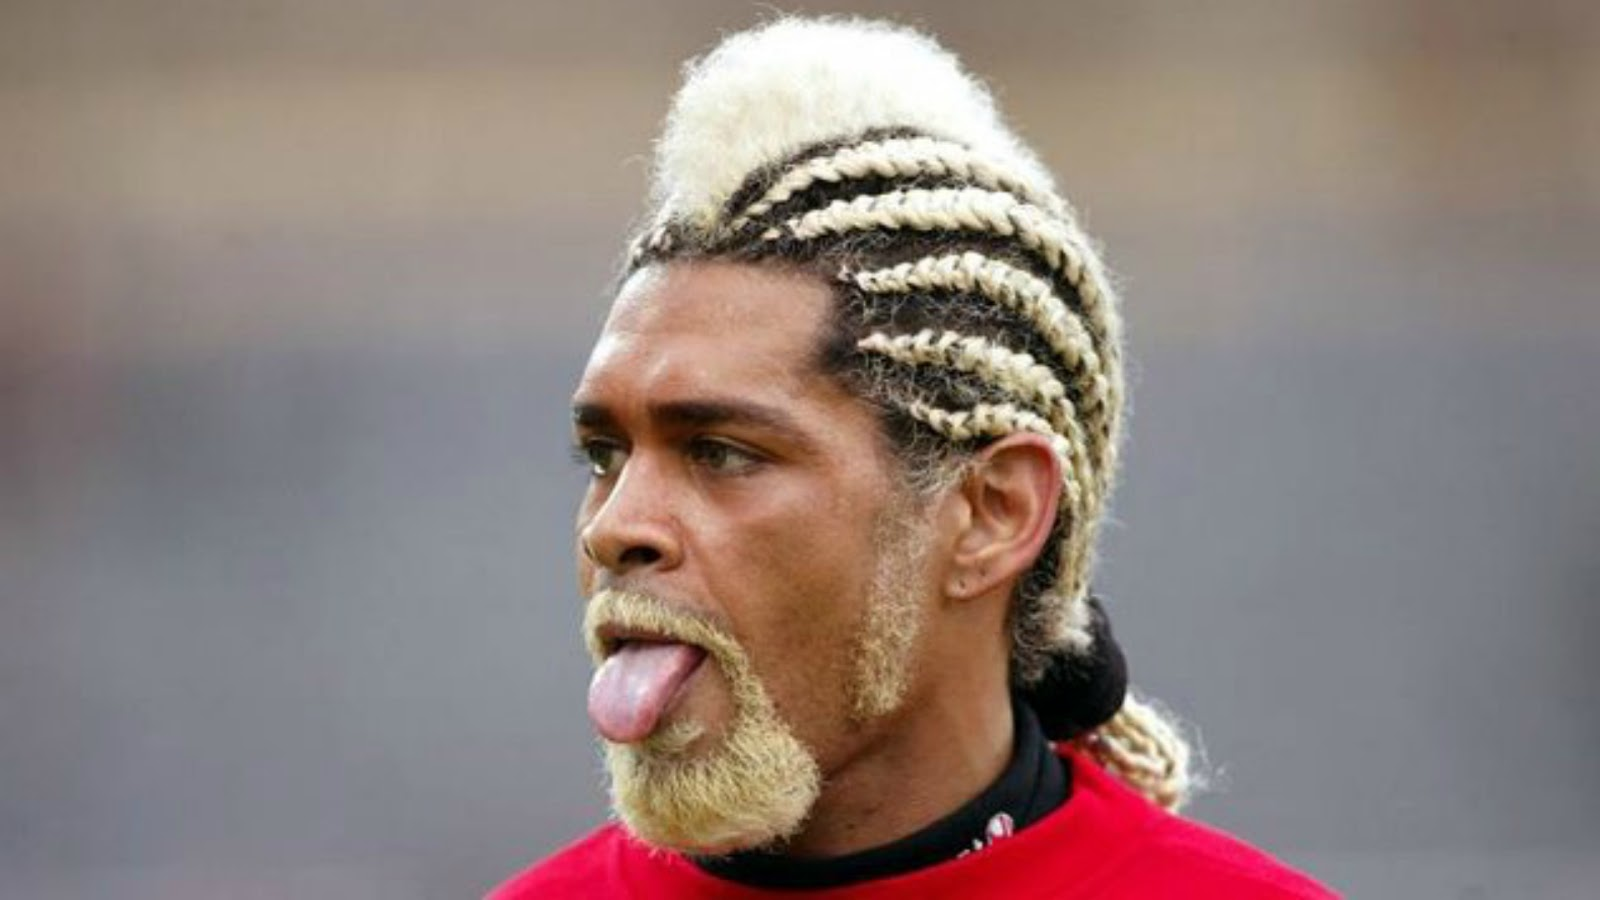 footballers best hairstyles inspiring to watch euro 2016